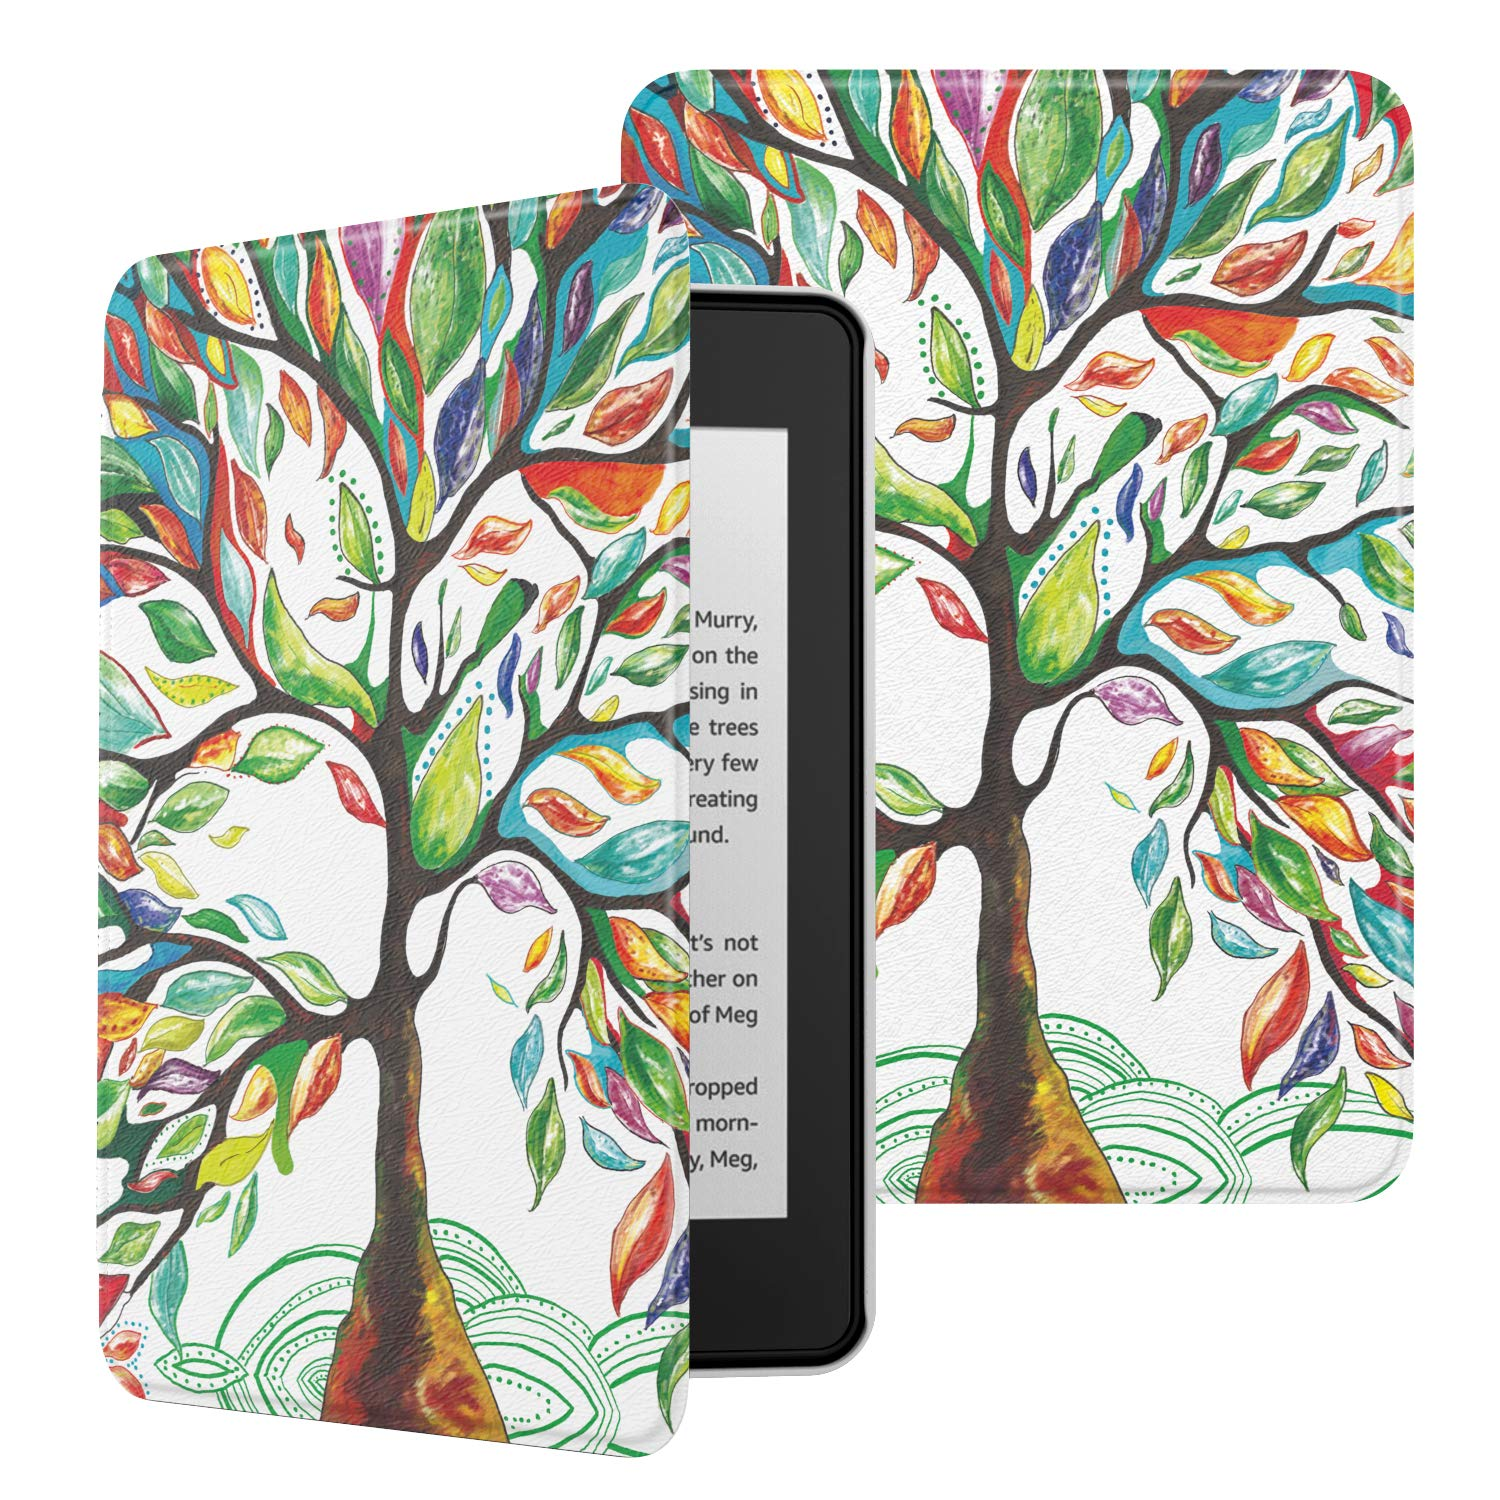 MoKo Case Fits Kindle Paperwhite (10th Generation, 2018 Releases), Premium Ultra Lightweight Shell Cover with Auto Wake/Sleep for Amazon Kindle Paperwhite 2018 E-Reader - Lucky Tree